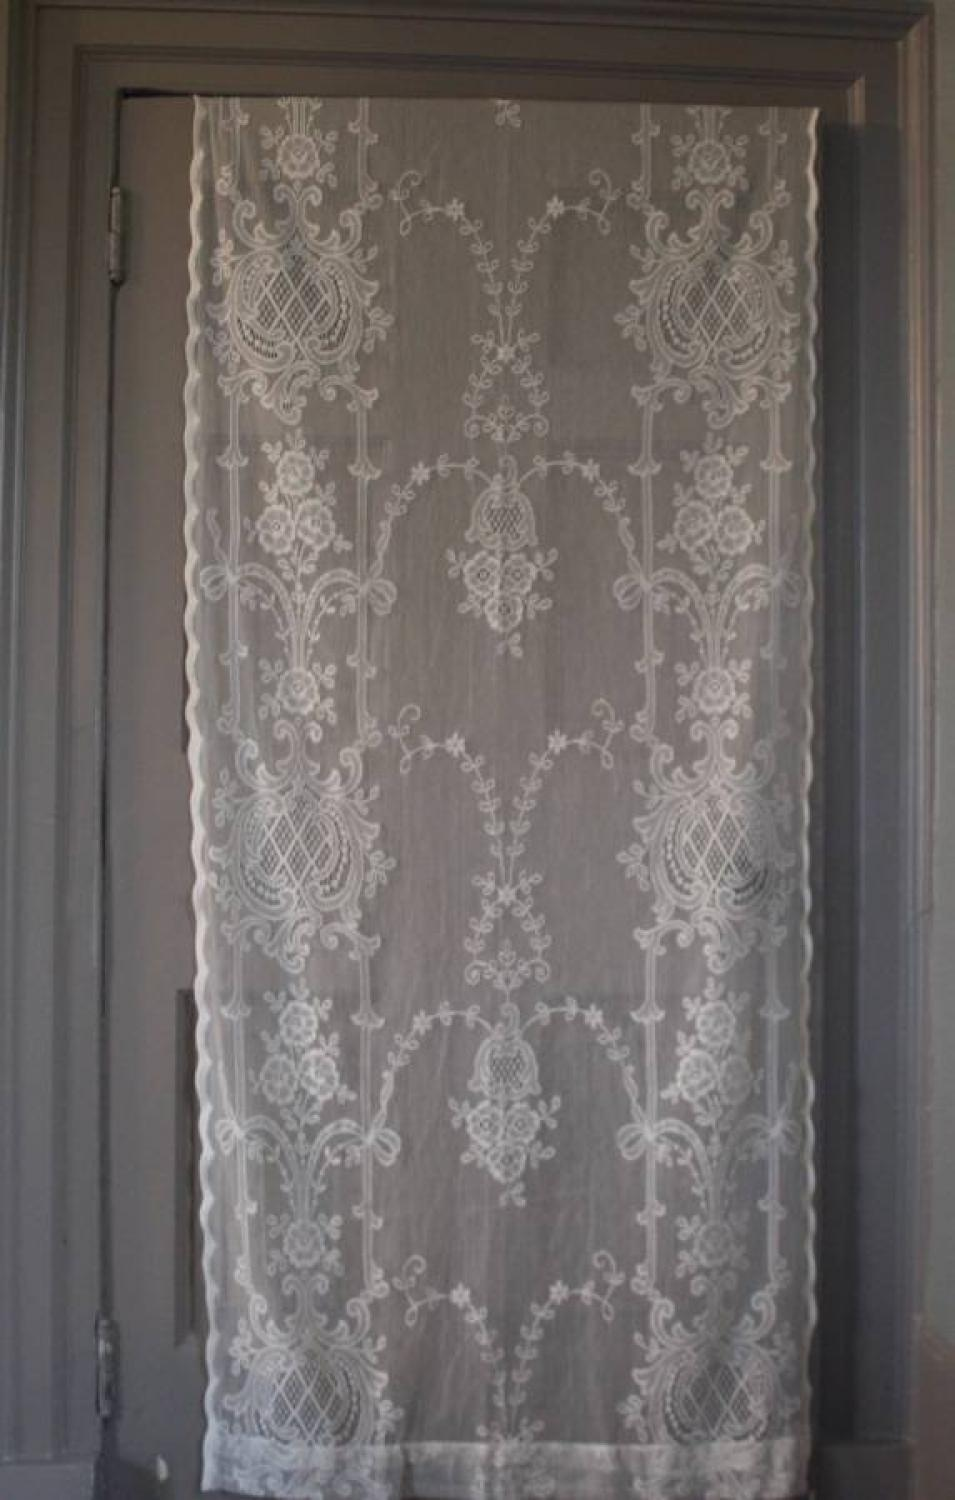 Lace panel